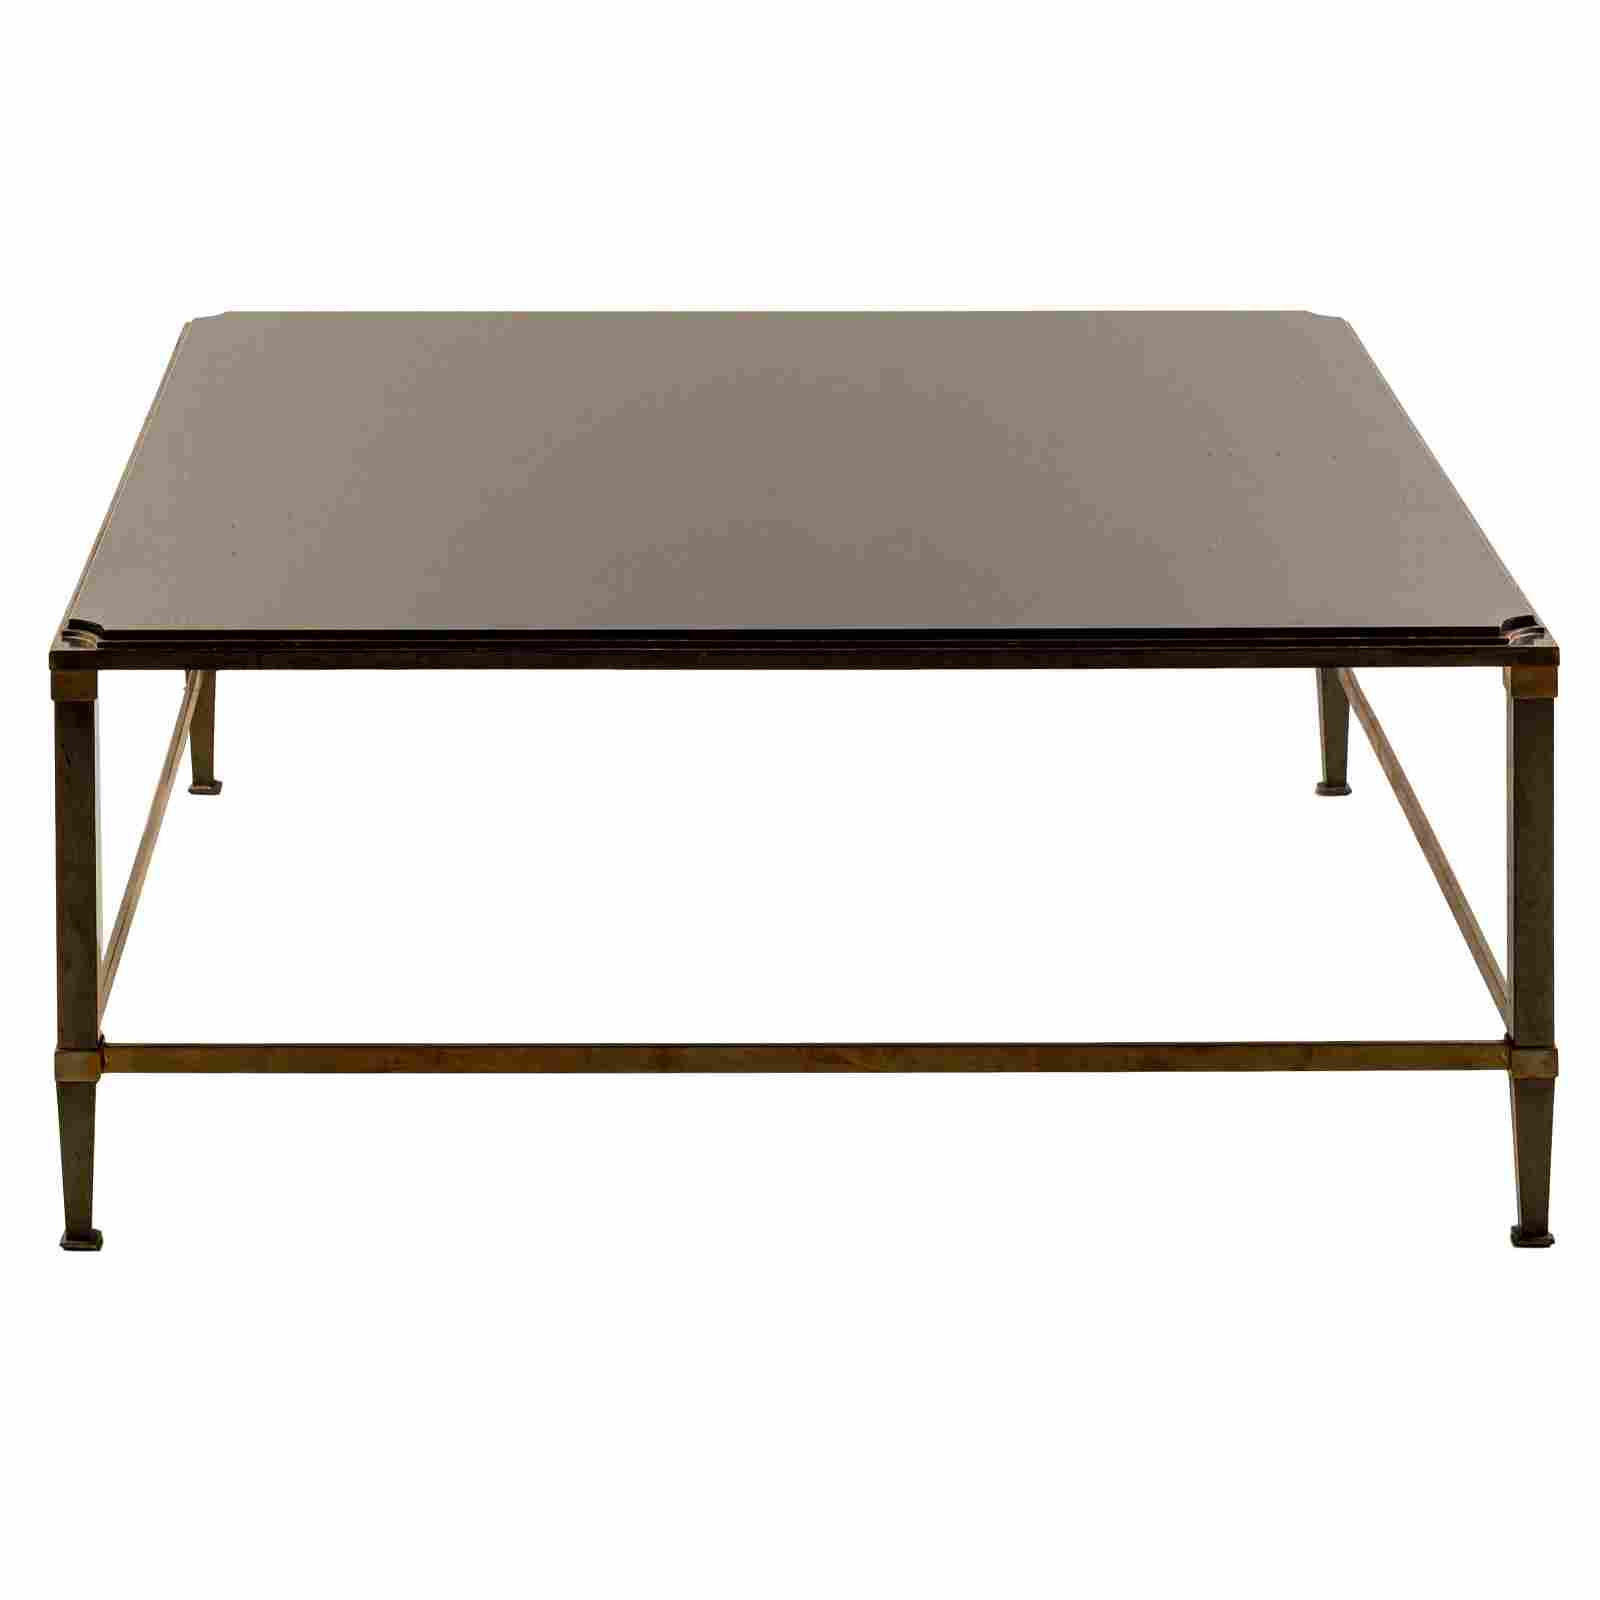 "Brass Mixed Metal 44"" Modernist Glass Coffee Table"